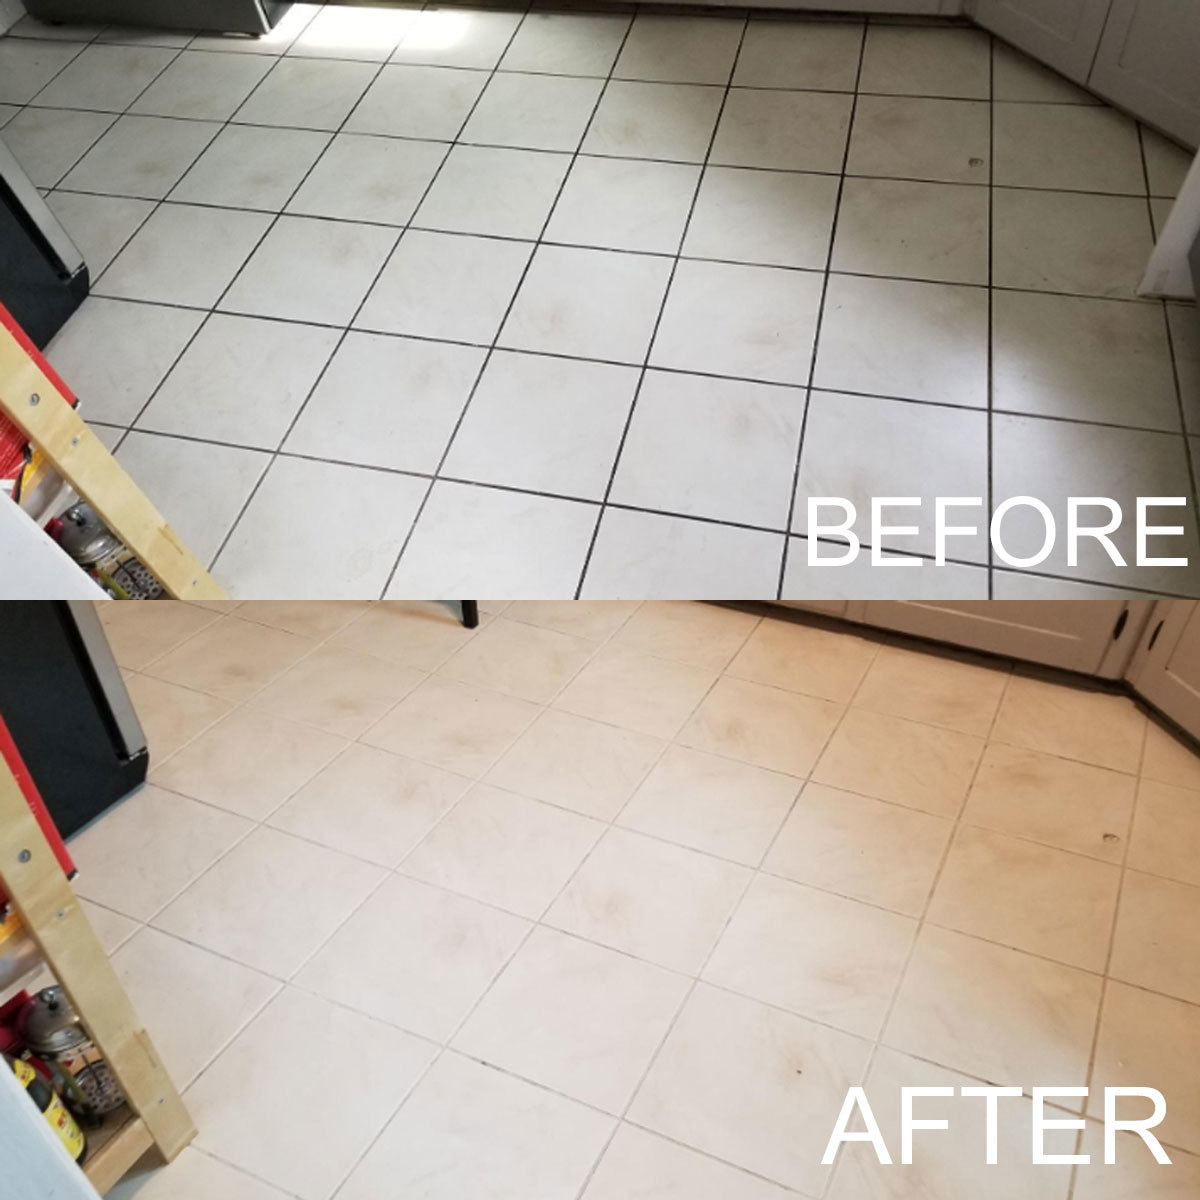 Reviewer photo showing before-and-after results of using Krud Kutter spray